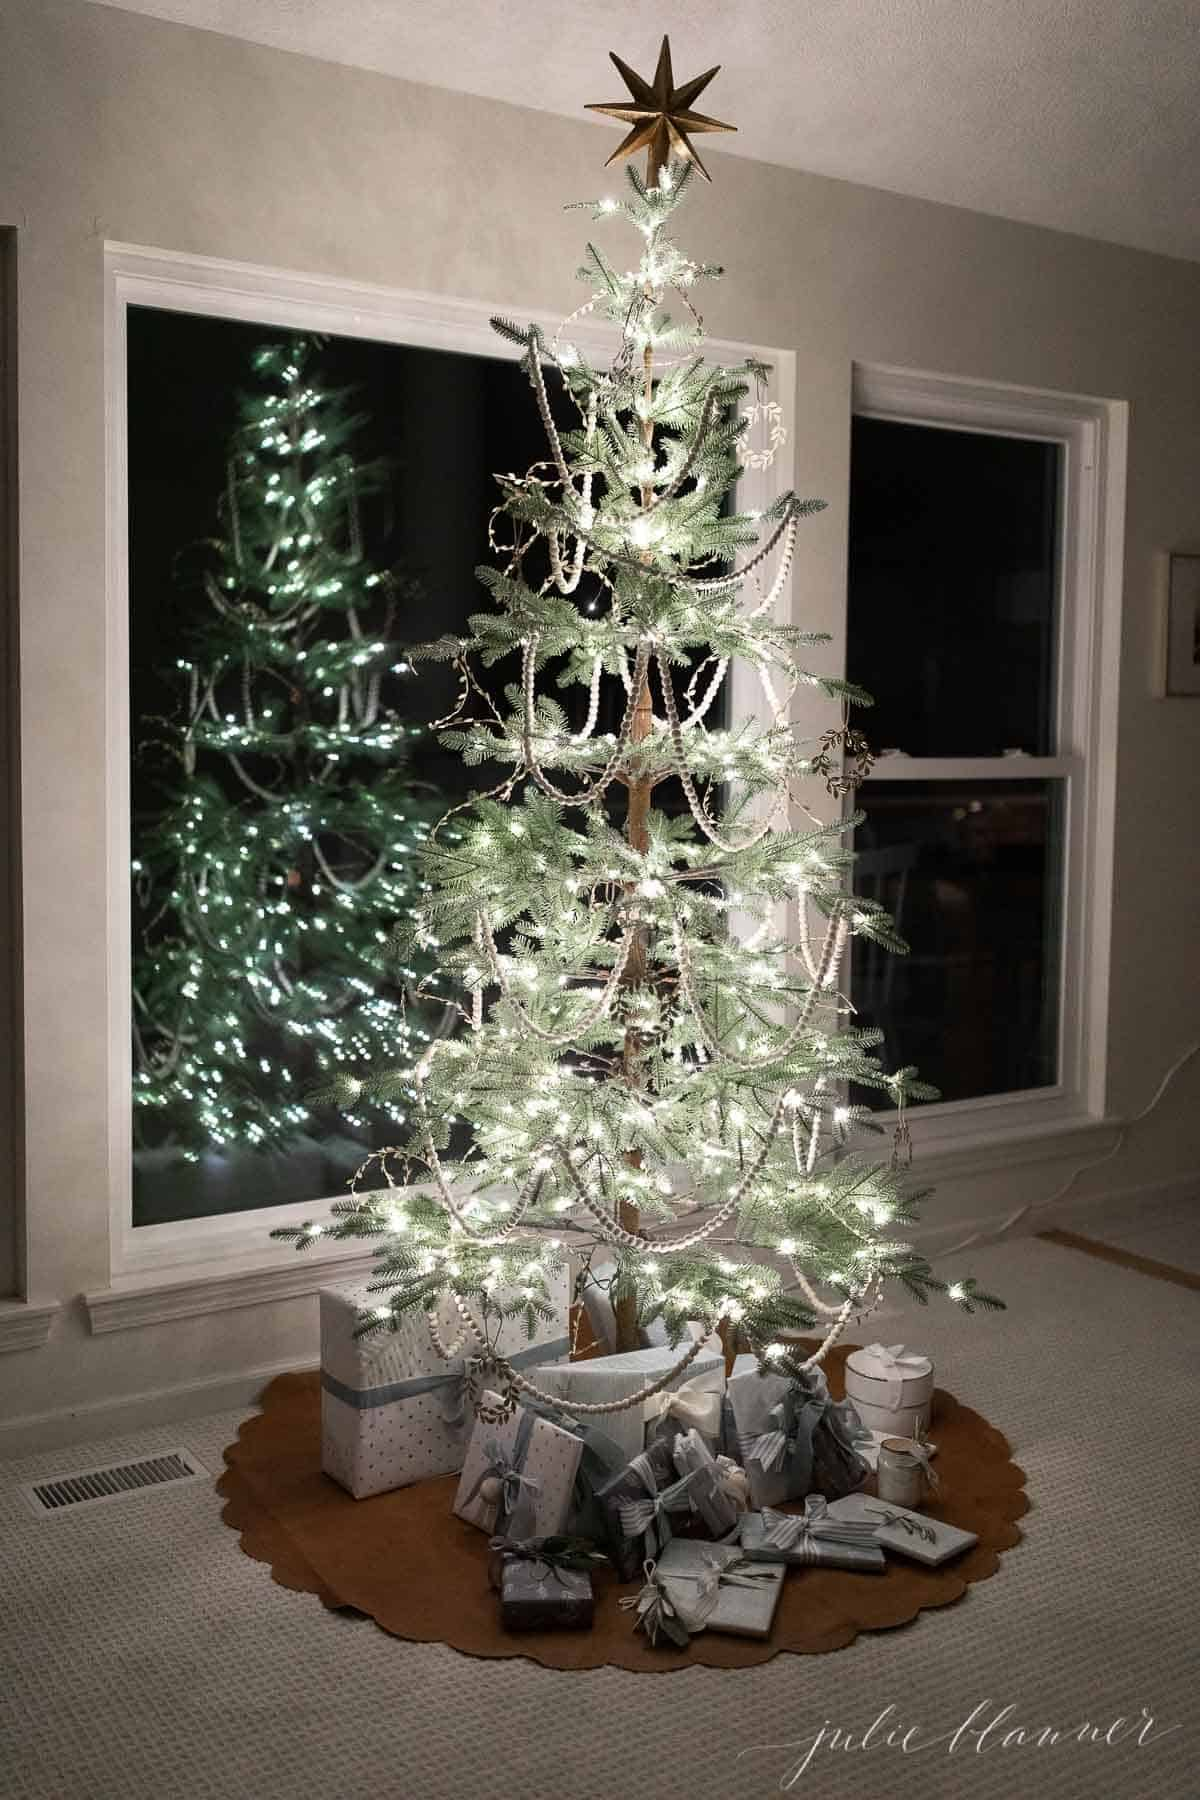 A sparsely decorated Scandinavian inspired Christmas tree reflecting in a window.